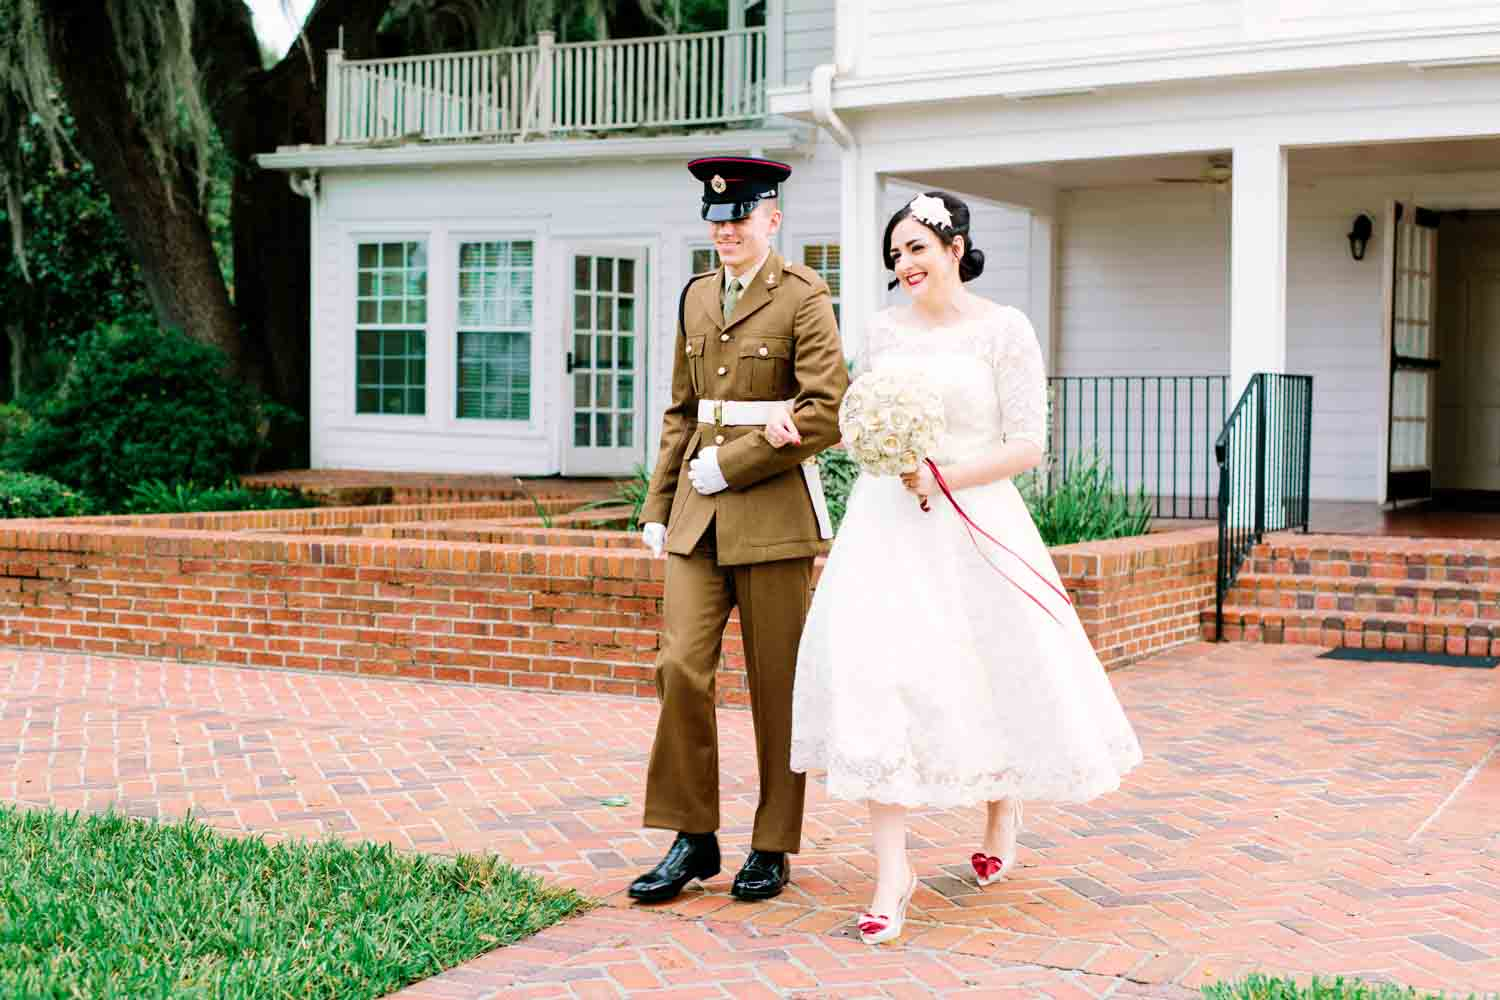 bride walking up brick paved walkway for wedding ceremony